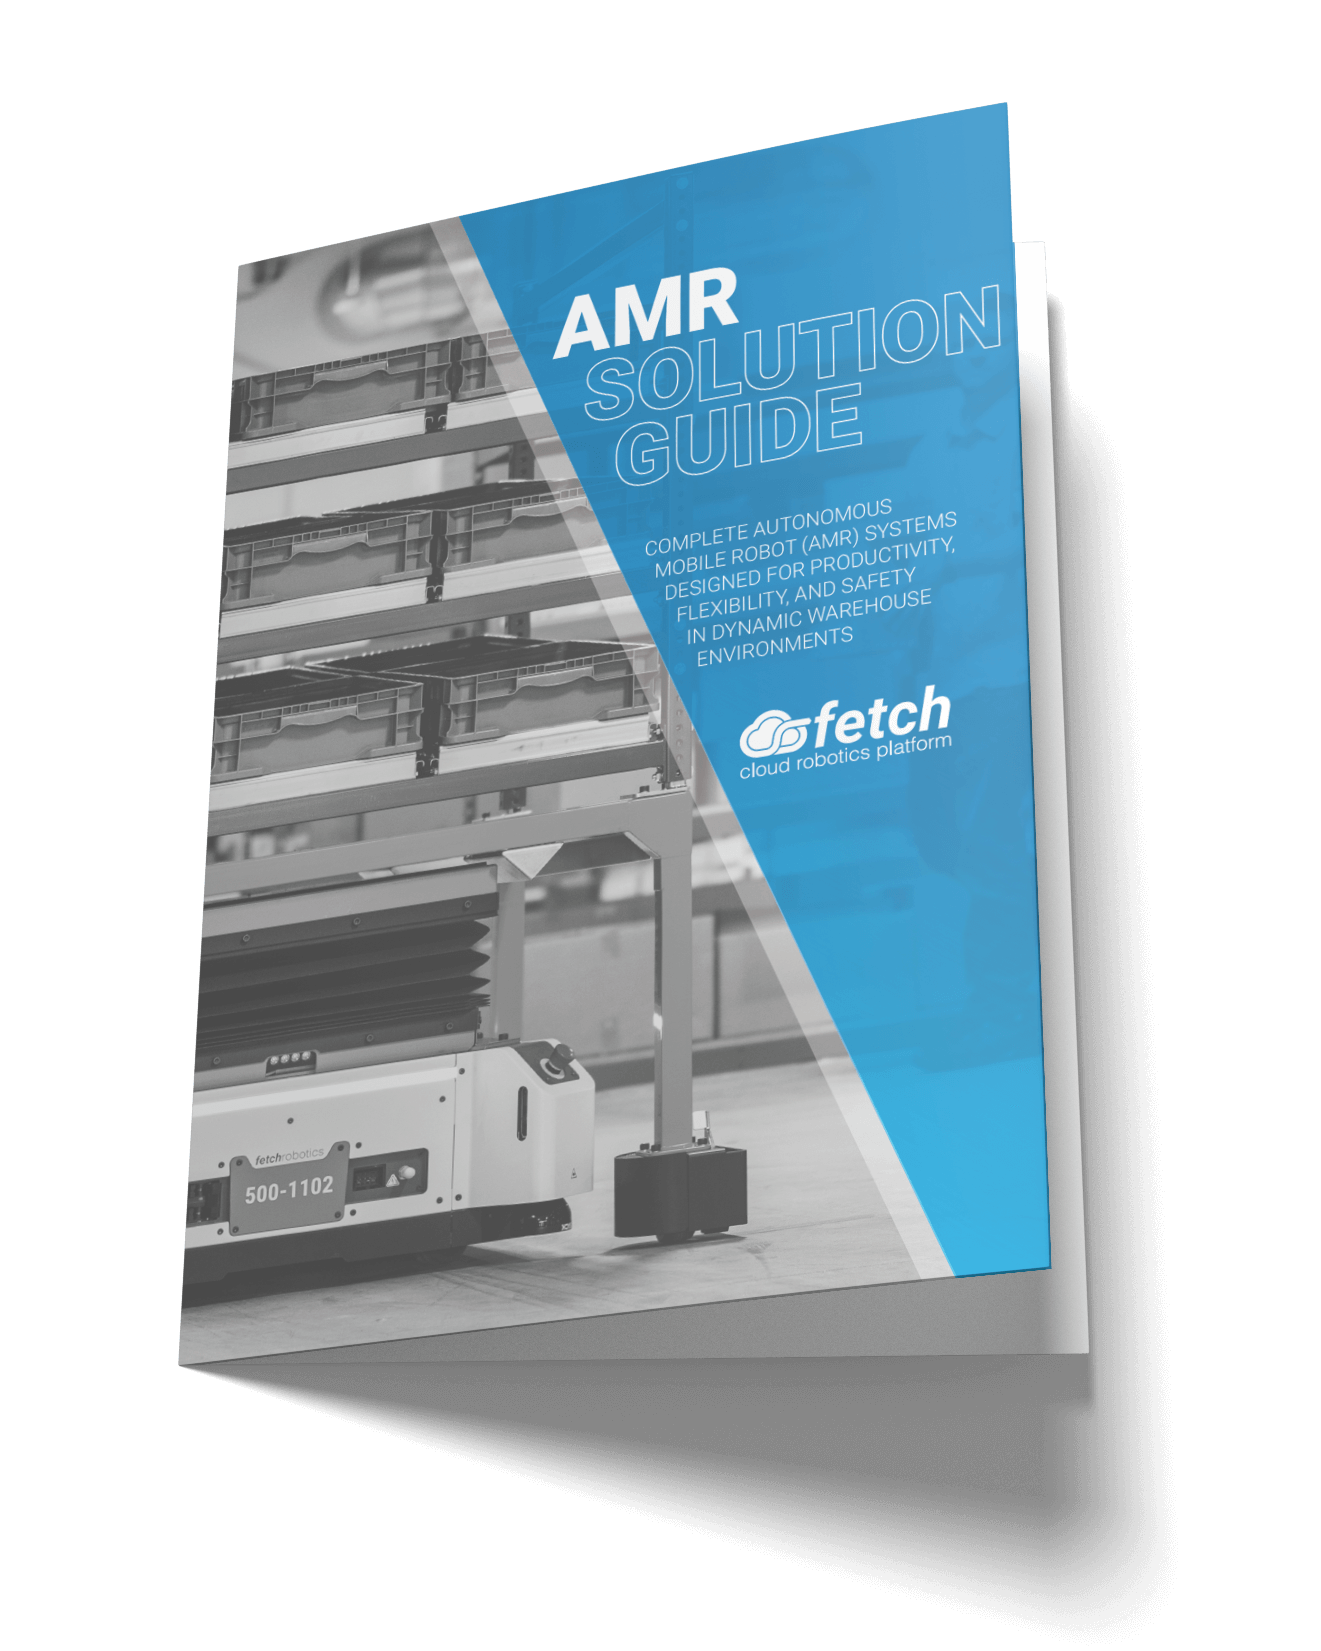 AMR Solution Guide